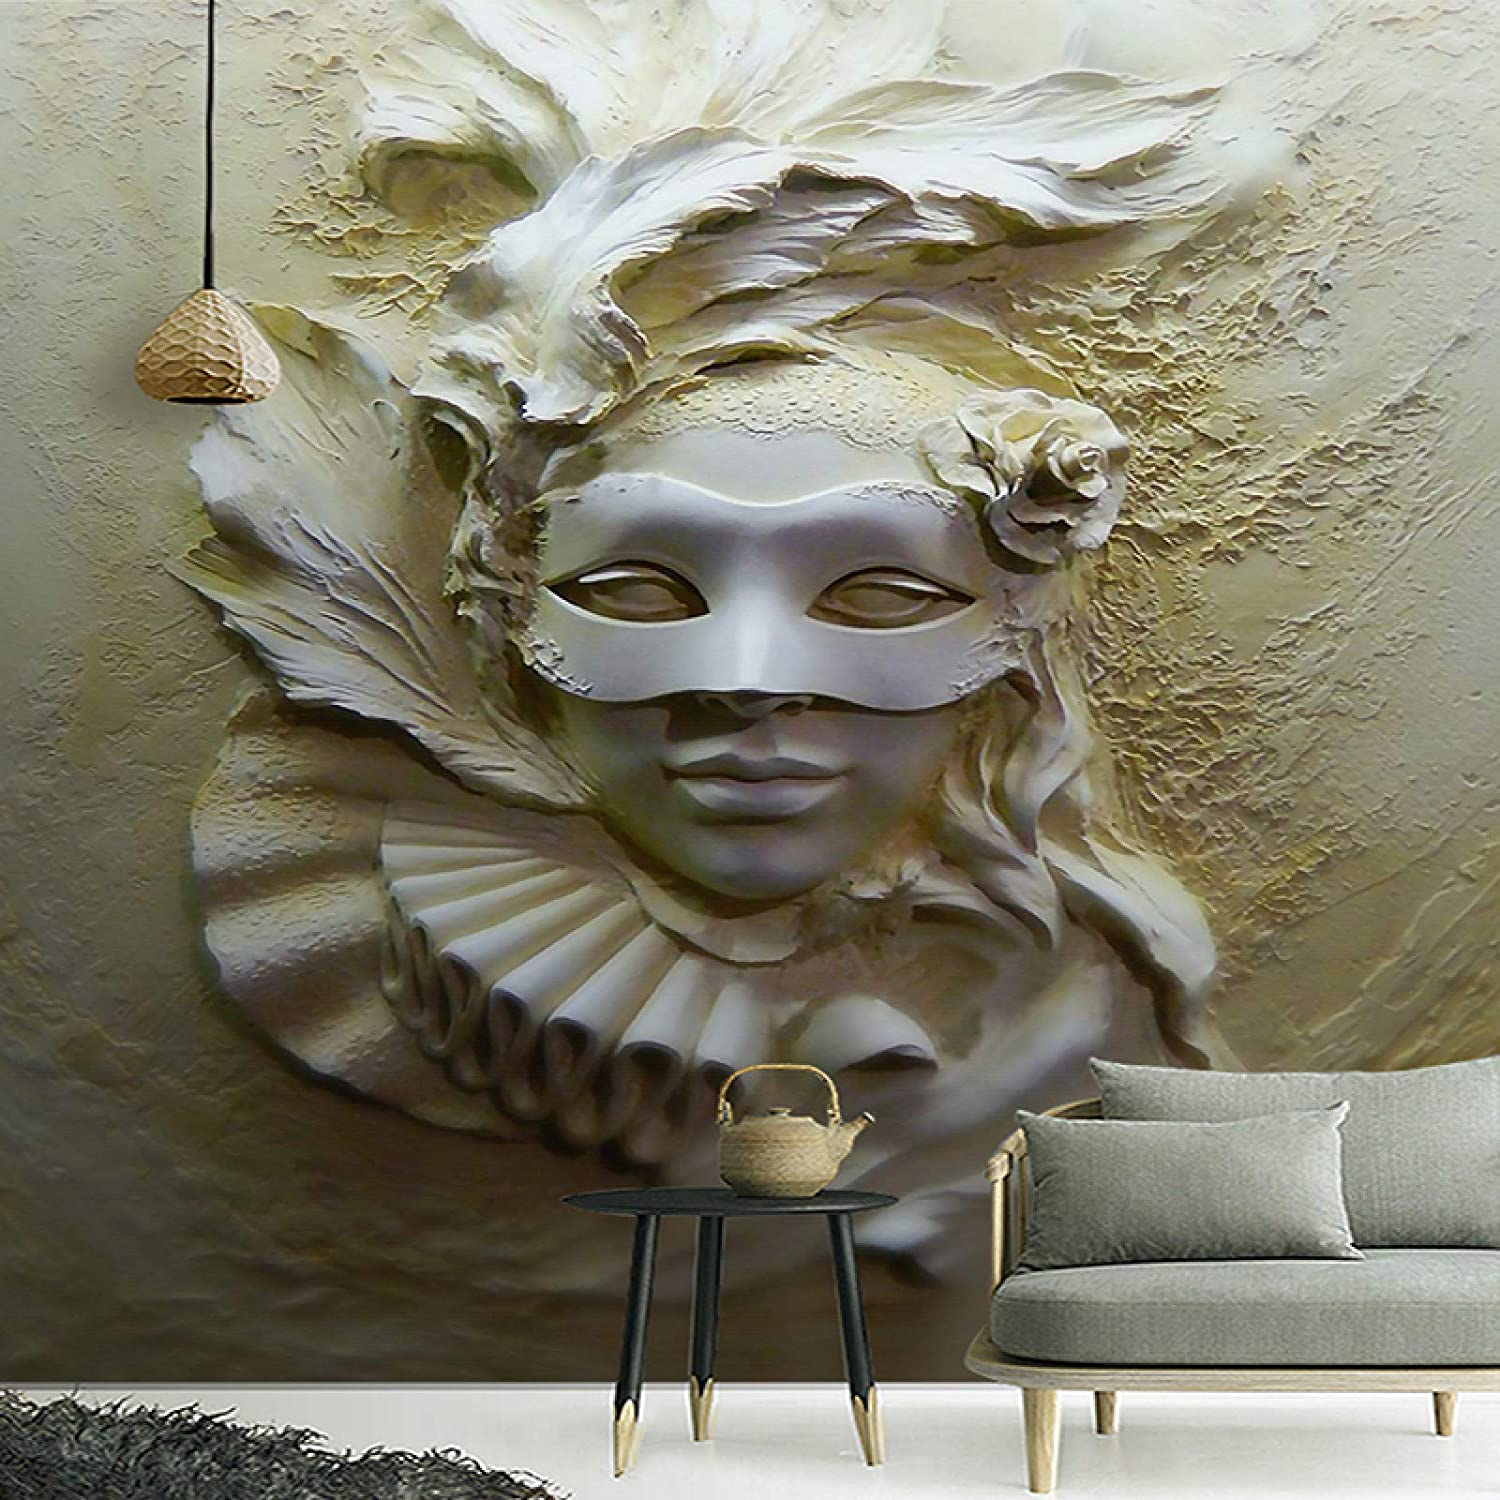 KMAOMAOZSH Wall Mural Save money Wallpaper Beauty Stereoscopic Embossed Austin Mall 3D